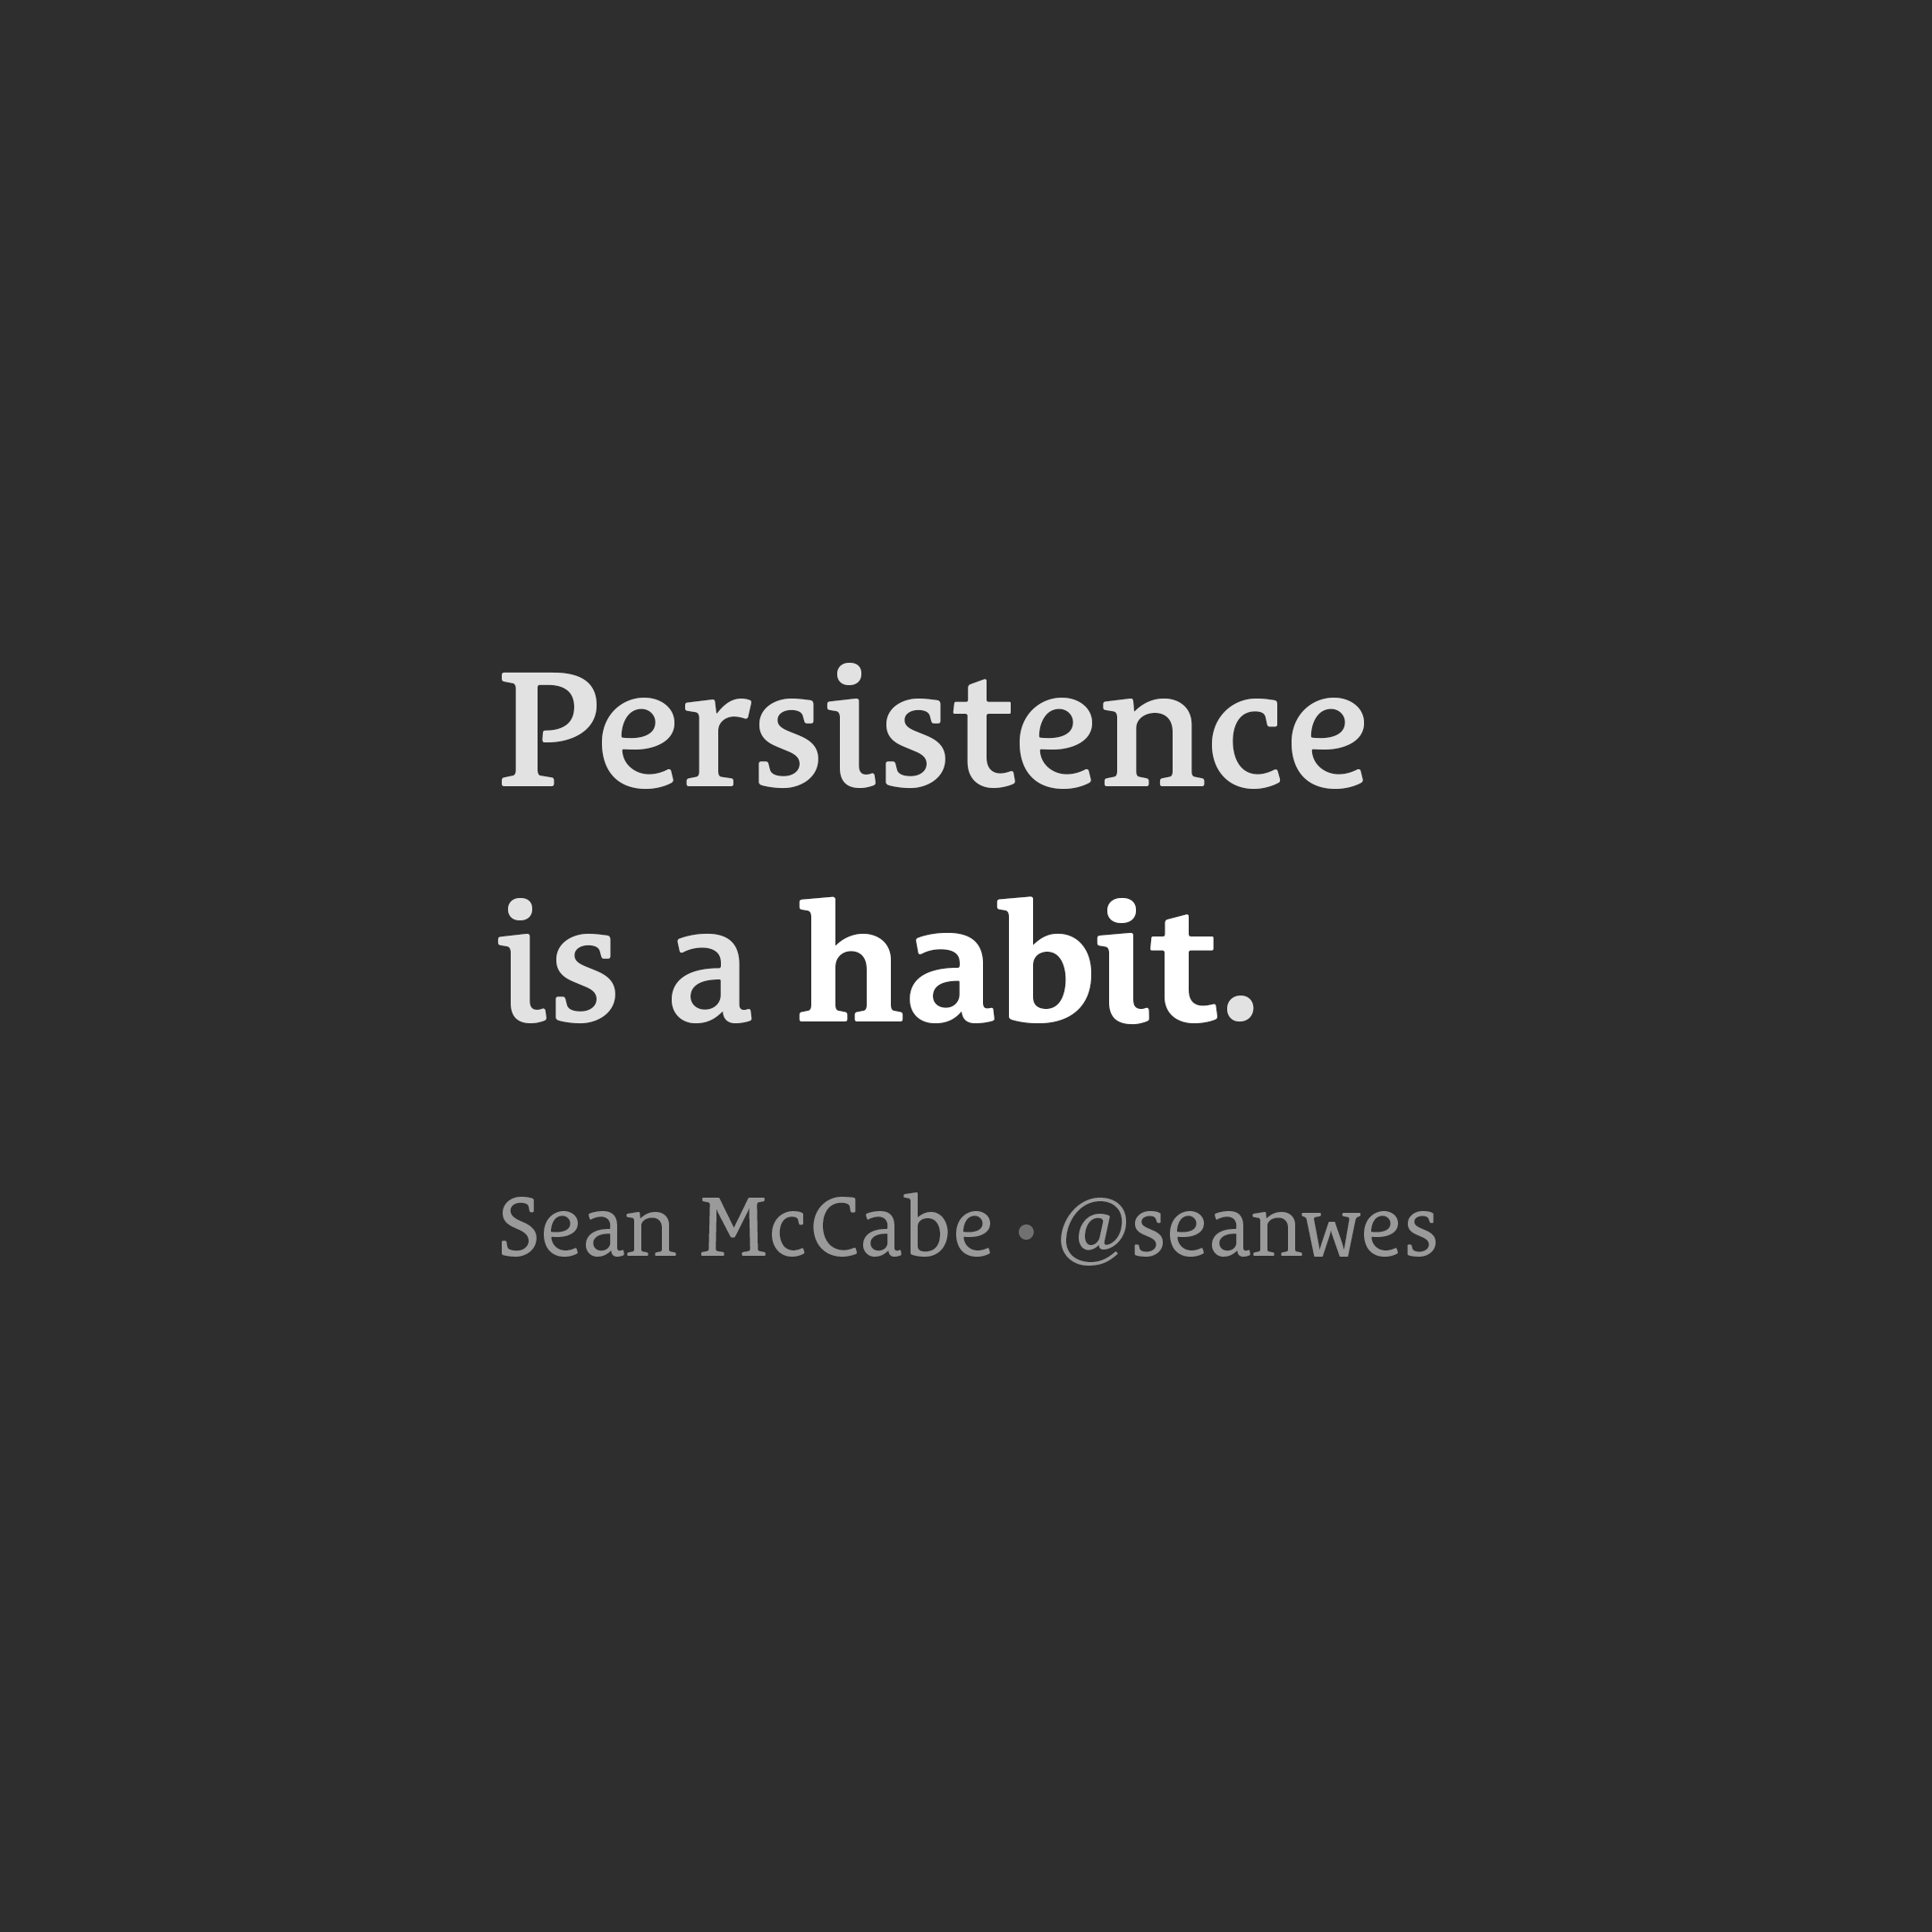 Persistence is a habit.